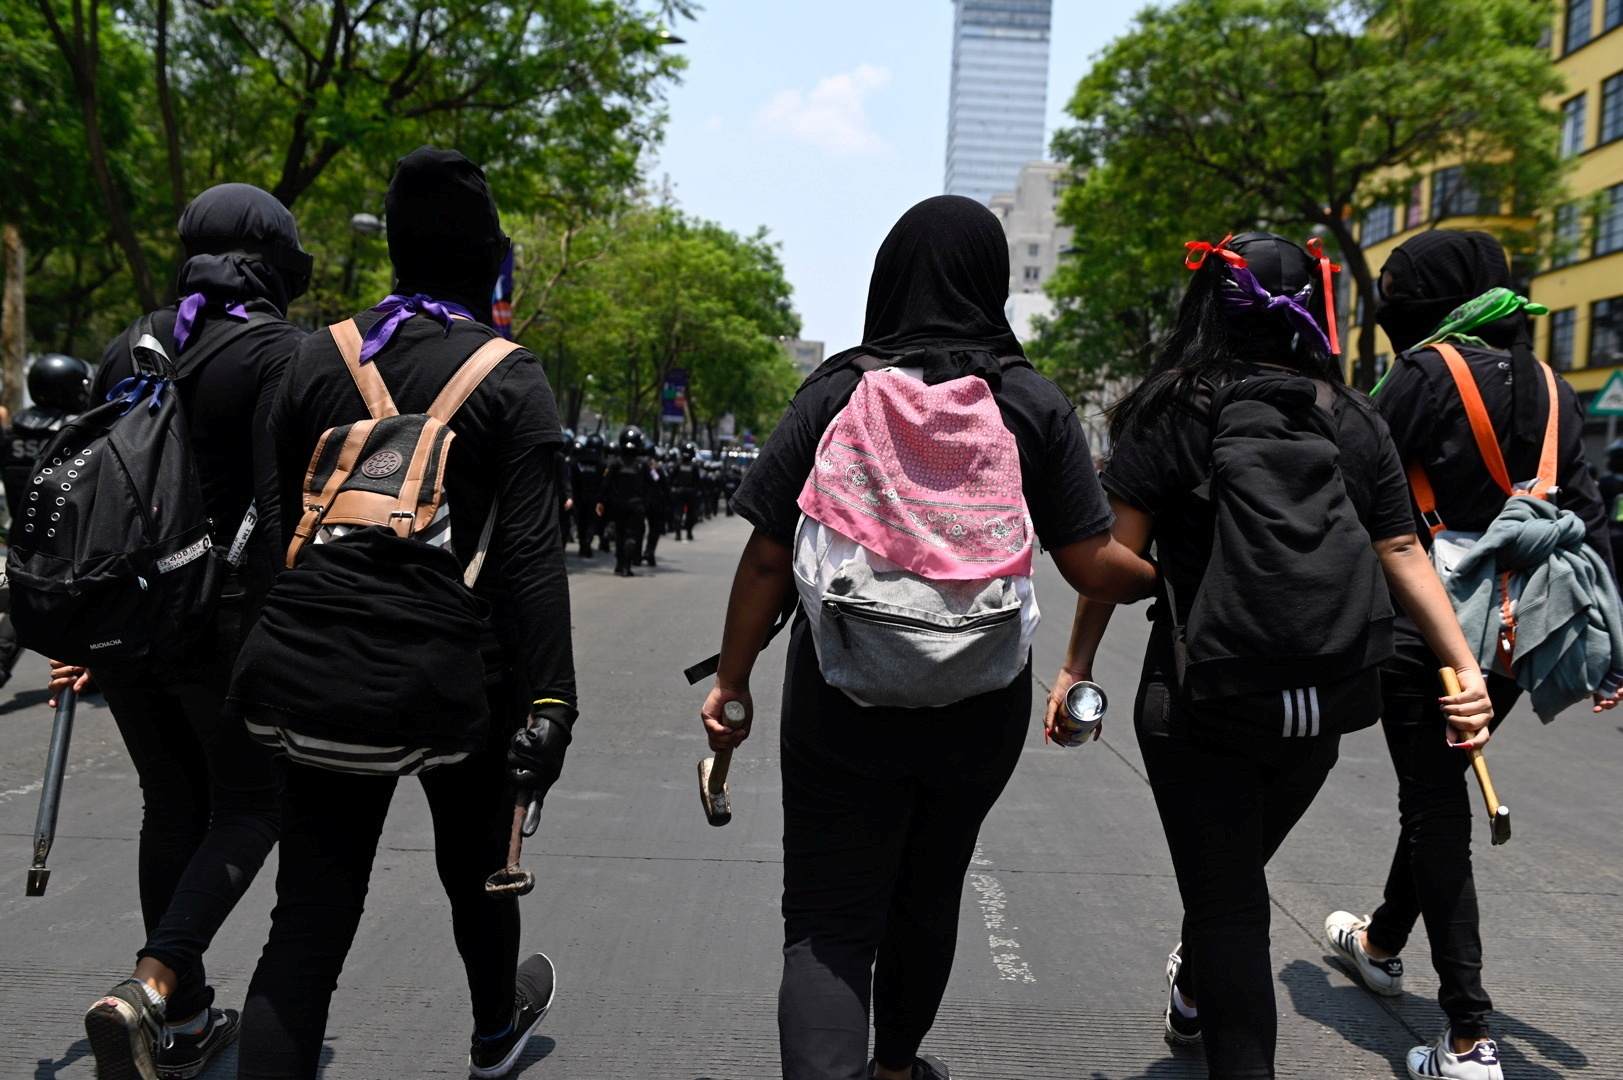 Demonstrators take to the streets during a protest of feminist collectives against the police and the excess of public force used to disperse peaceful protests, in downtown Mexico City, Mexico, May 29, 2021. REUTERS/Mahe Elipe/File Photo